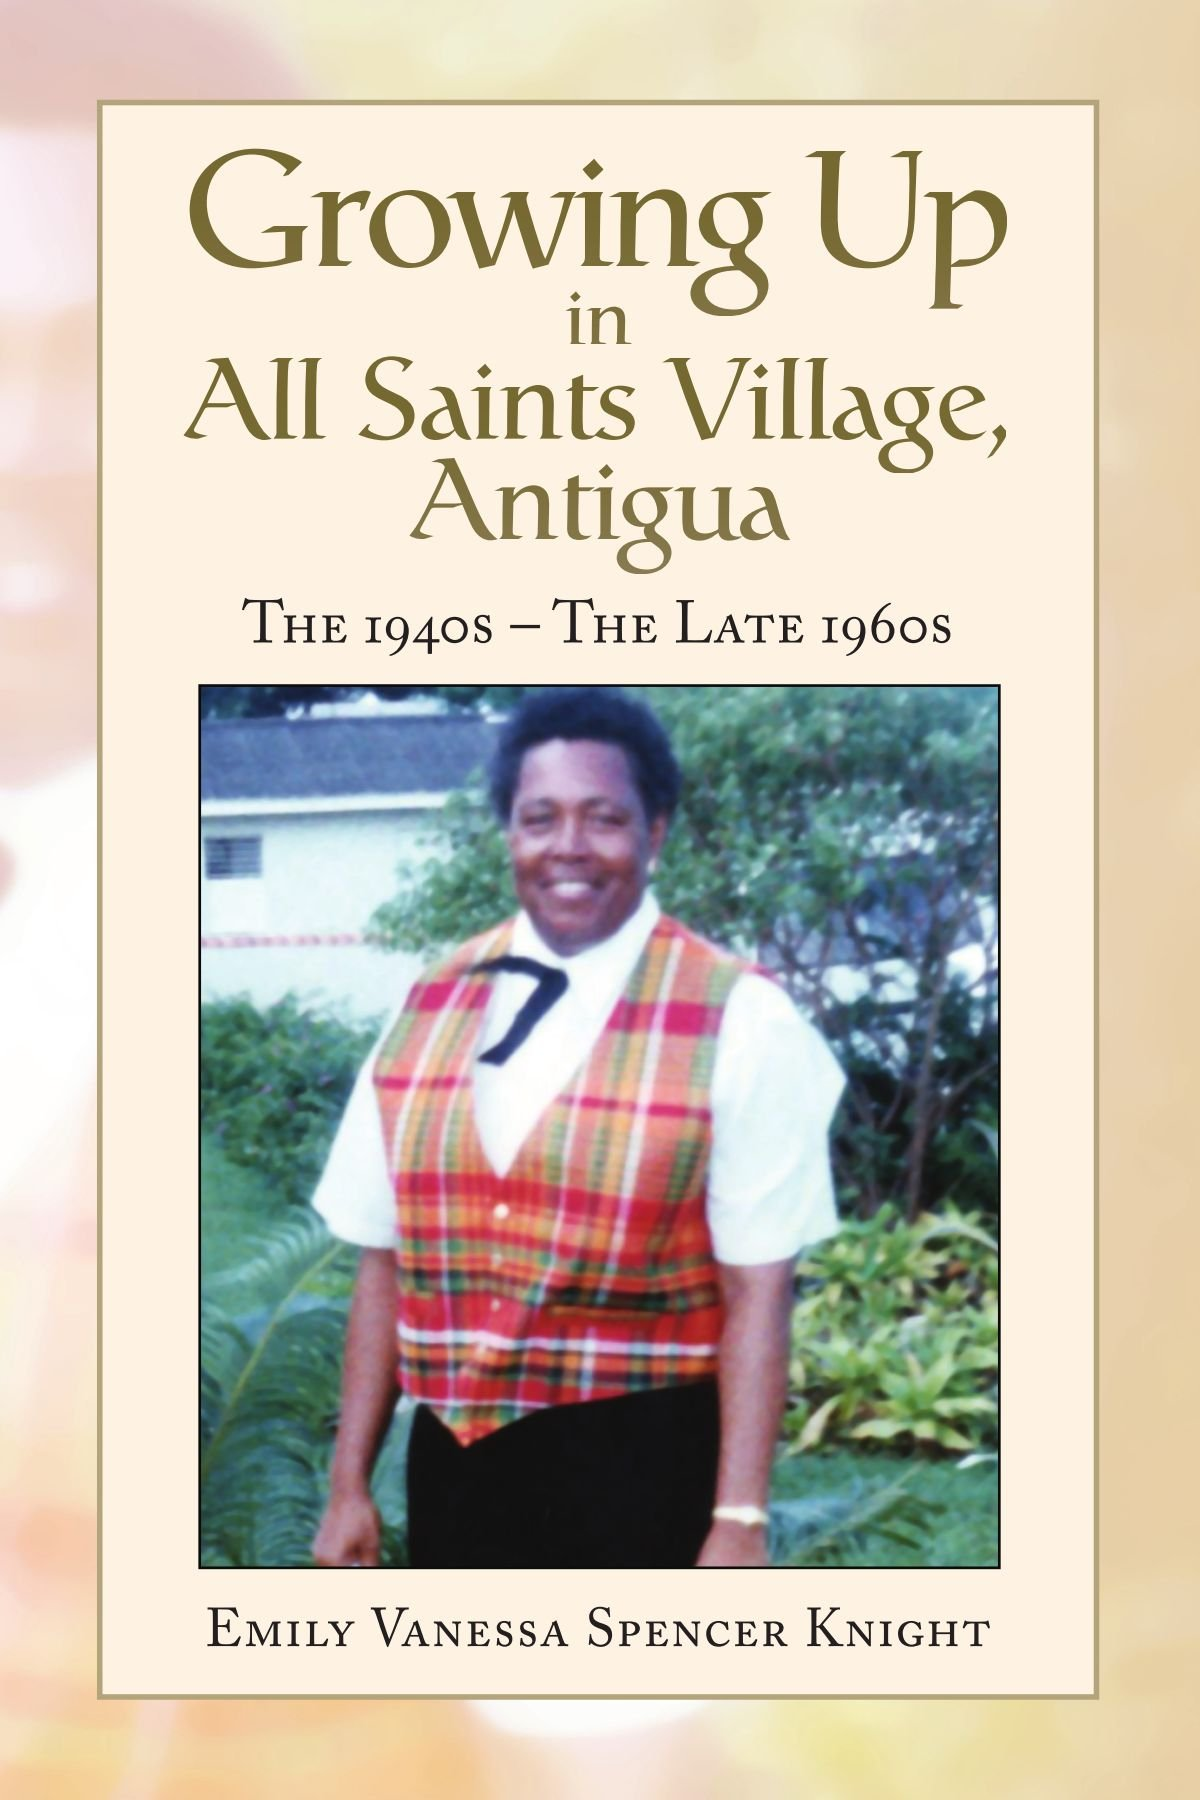 Download Growing Up In All Saints Village, Antigua: The 1940s - The Late 1960s pdf